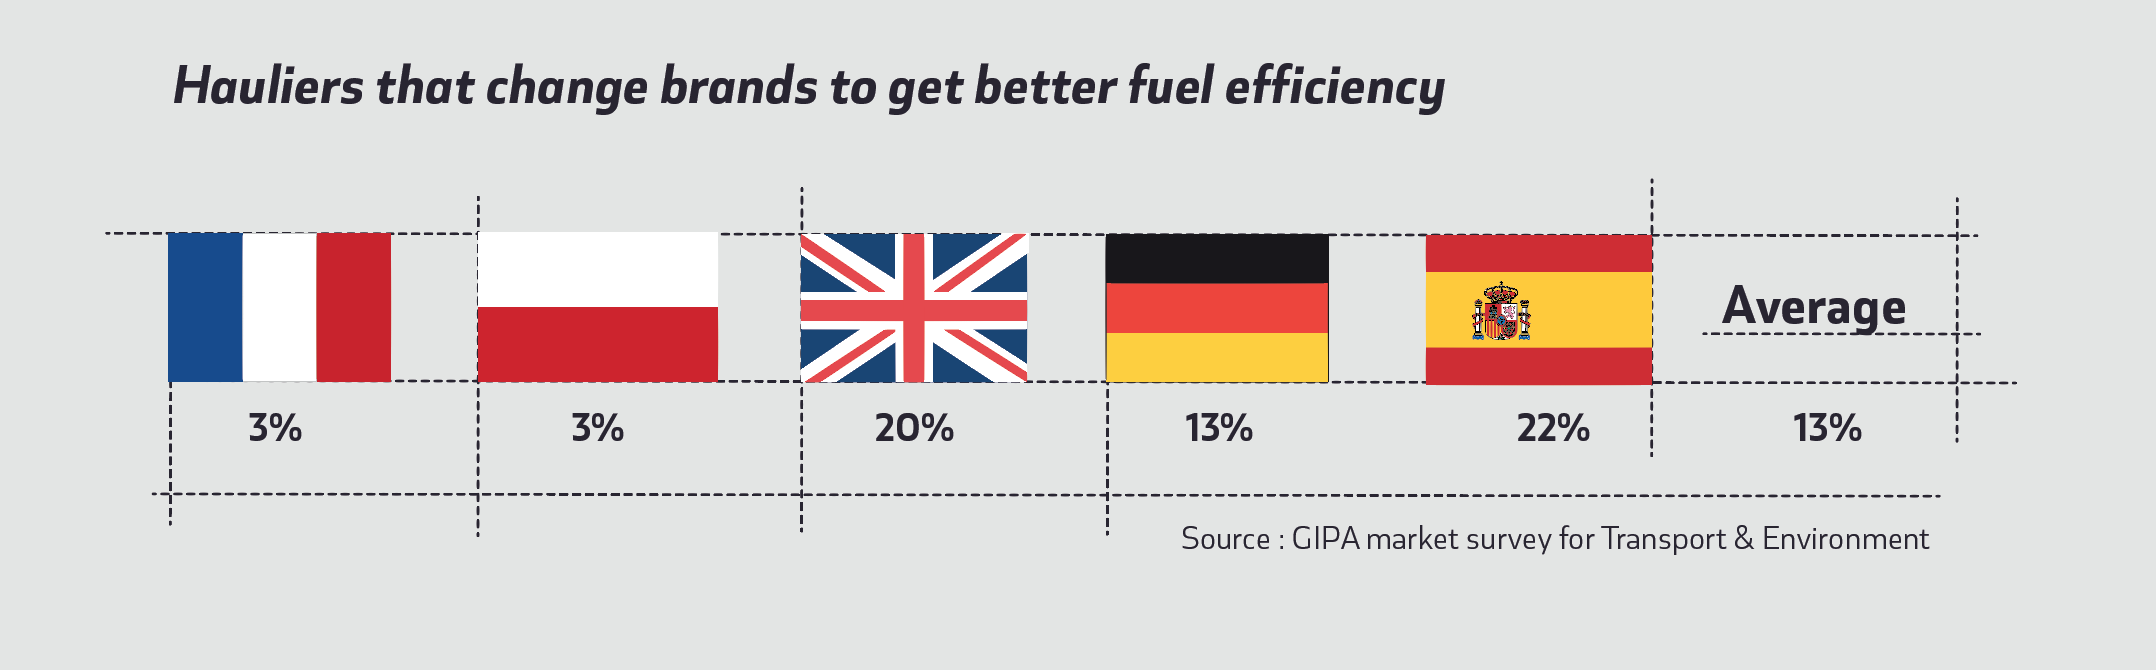 Comparison in Europe of Hauliers changing brands for better fuel efficiency without currently a regulation in place